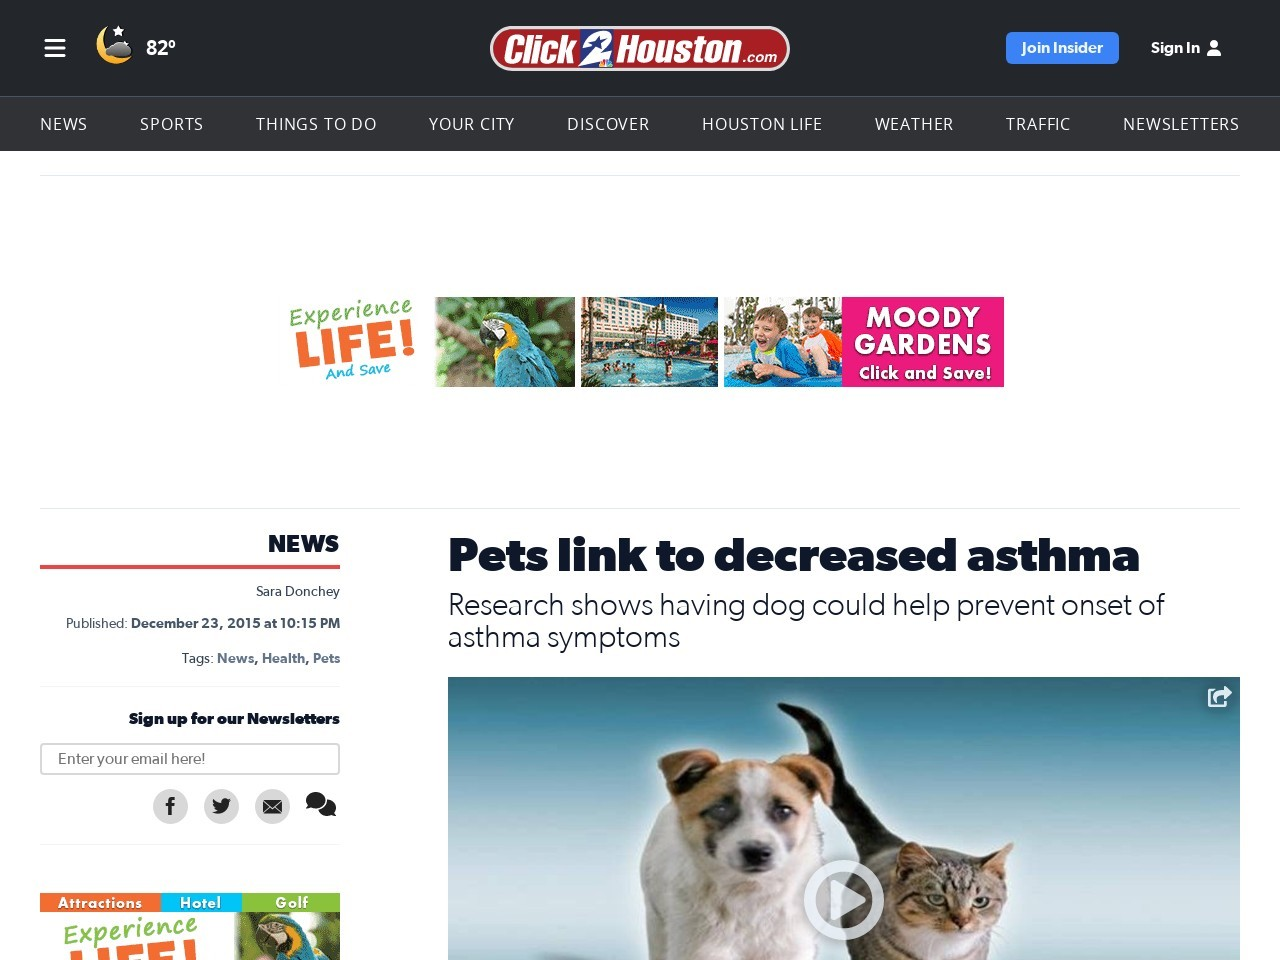 Pets link to decreased asthma